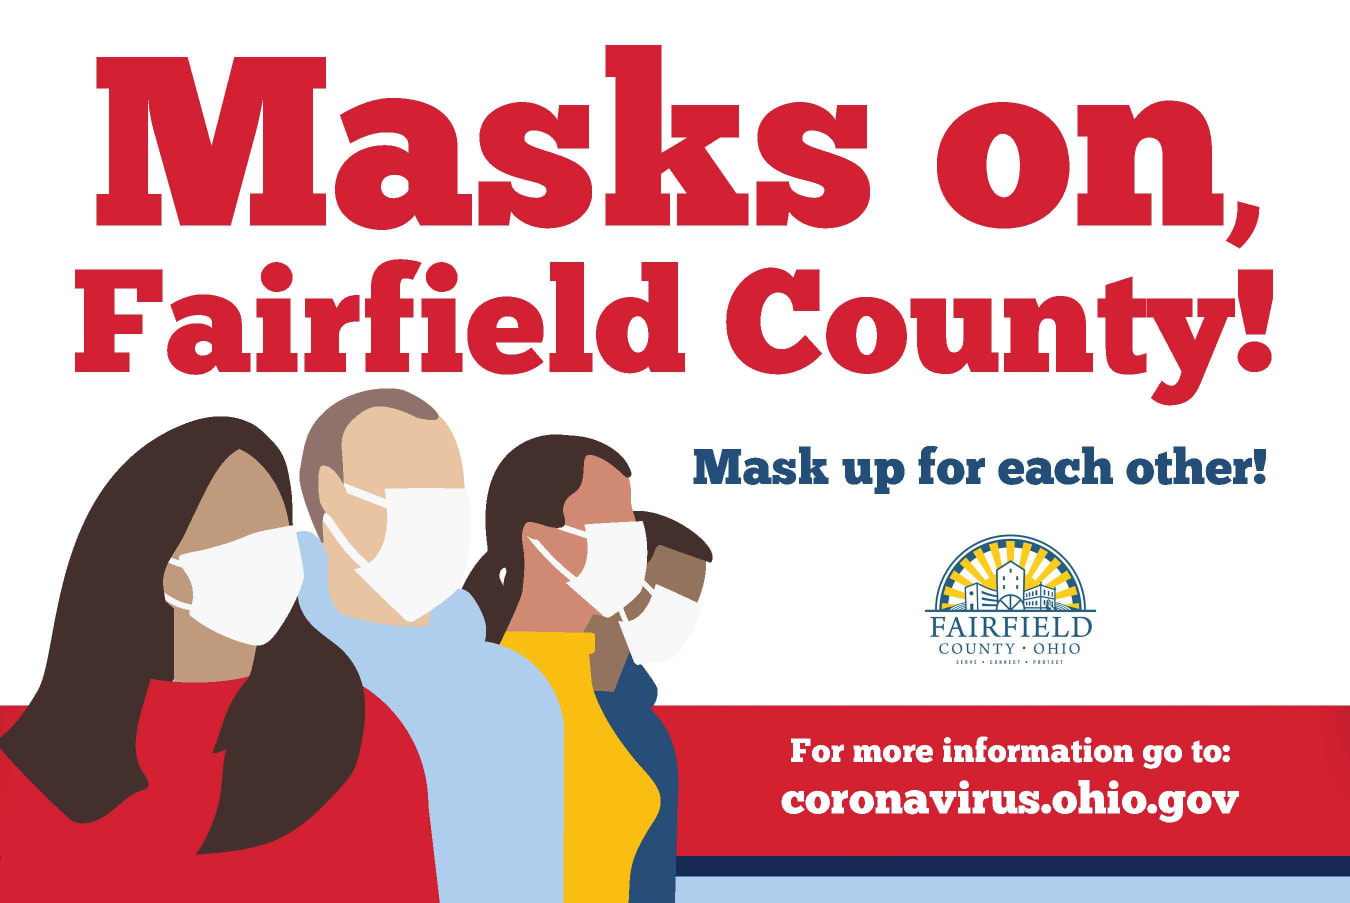 Mask-on-Fairfield-County-w1350.jpg